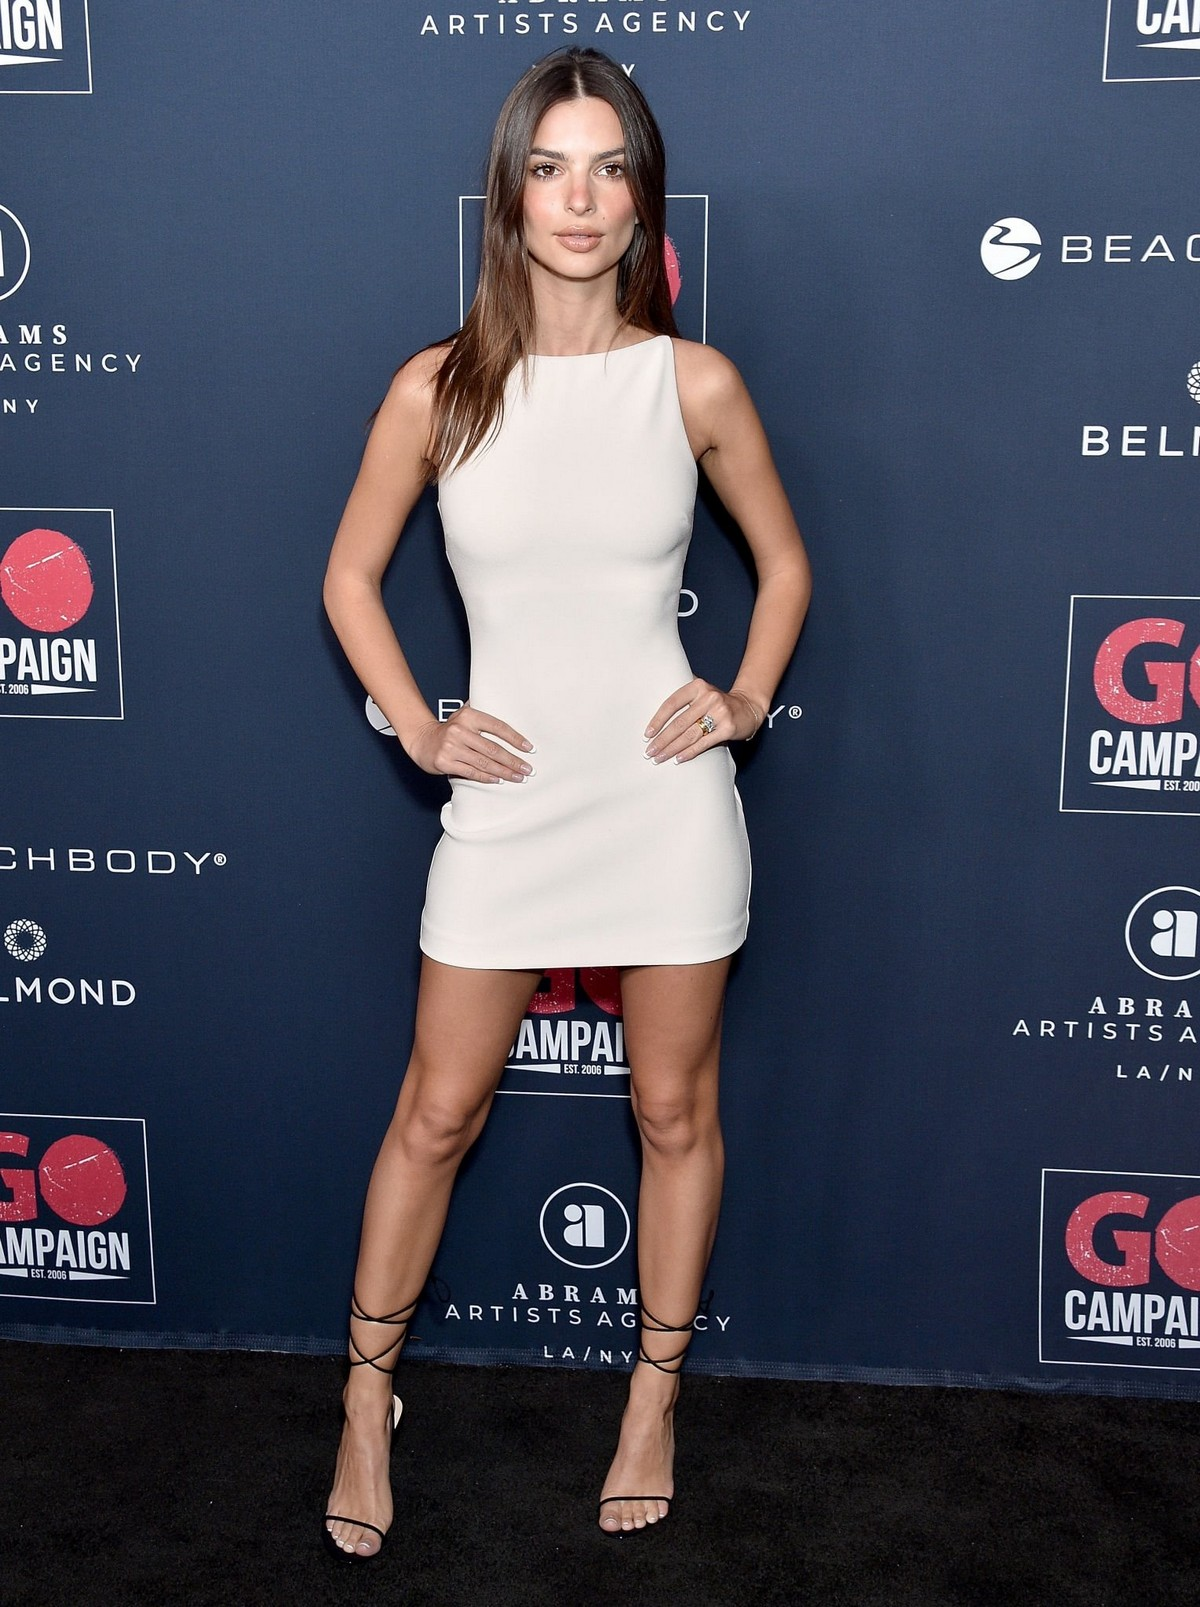 Emily Ratajkowski attends GO Campaign's 13th Annual Gala at NeueHouse in Hollywood 2019/11/16 9